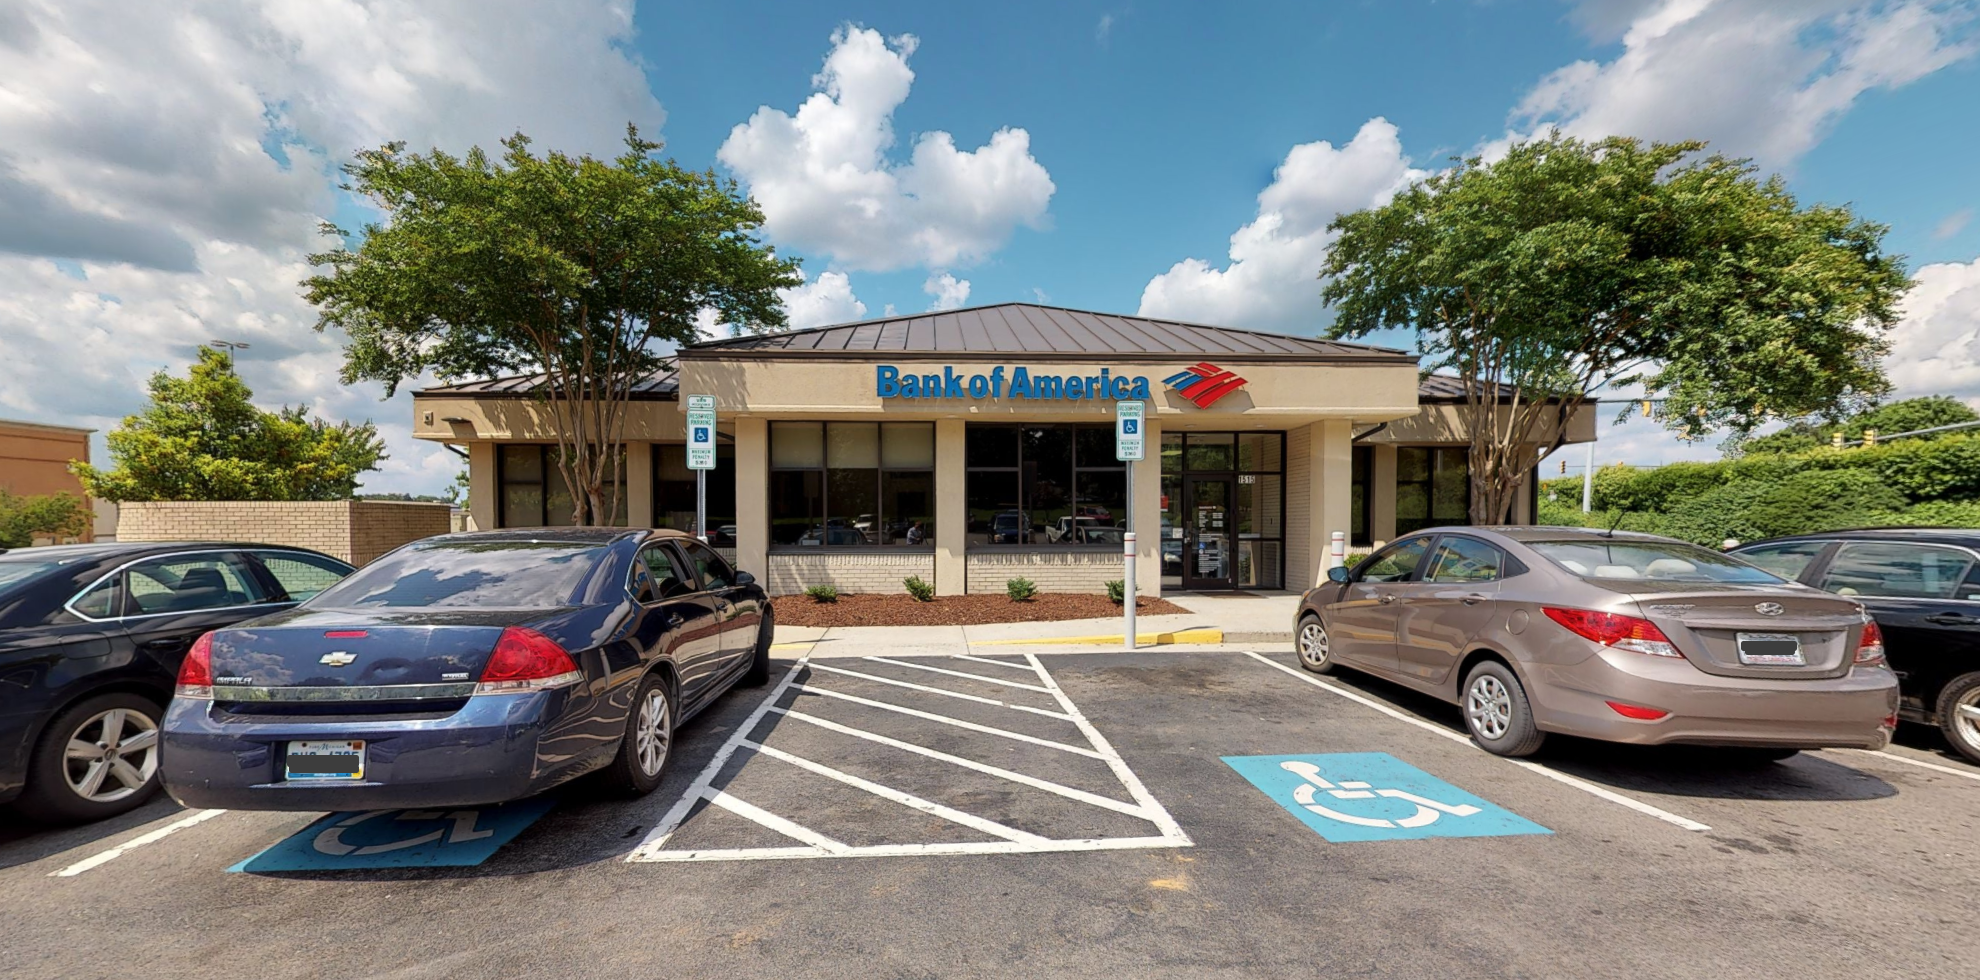 Bank of America financial center with drive-thru ATM and teller   1515 N Gregson St, Durham, NC 27701